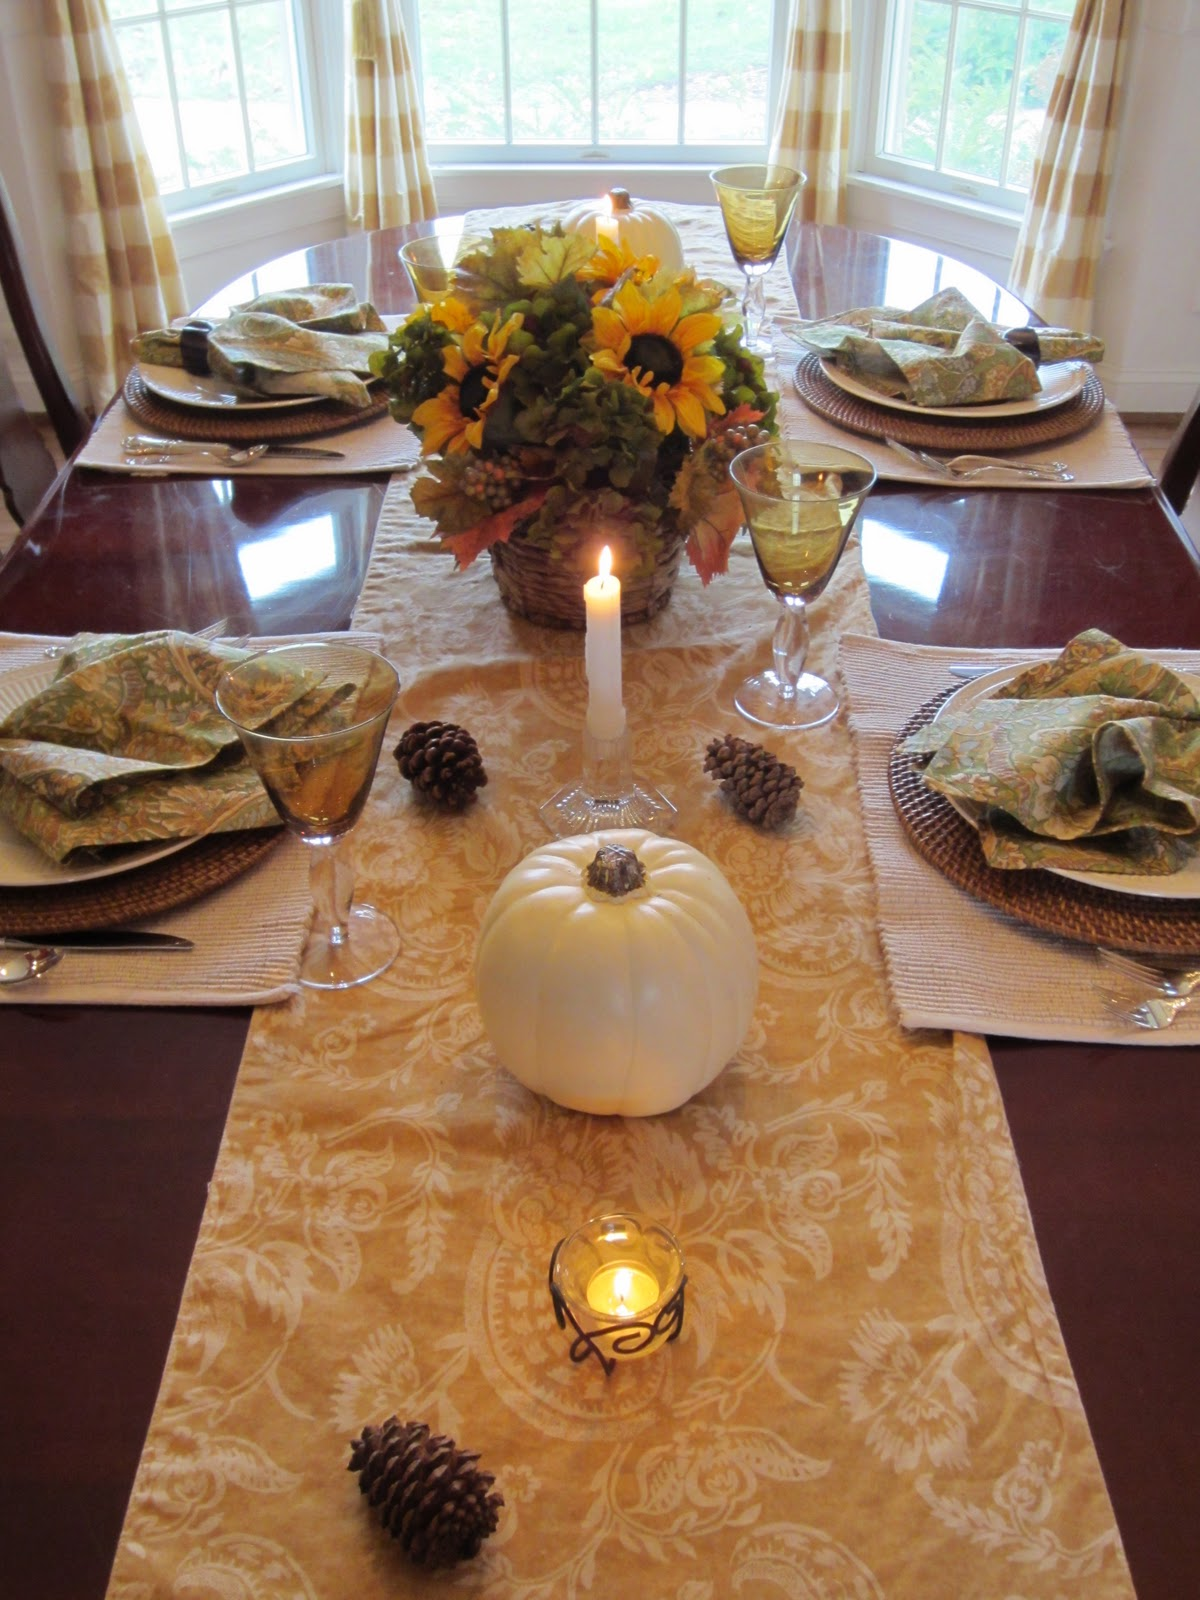 Thanksgiving Table with golden damask runner